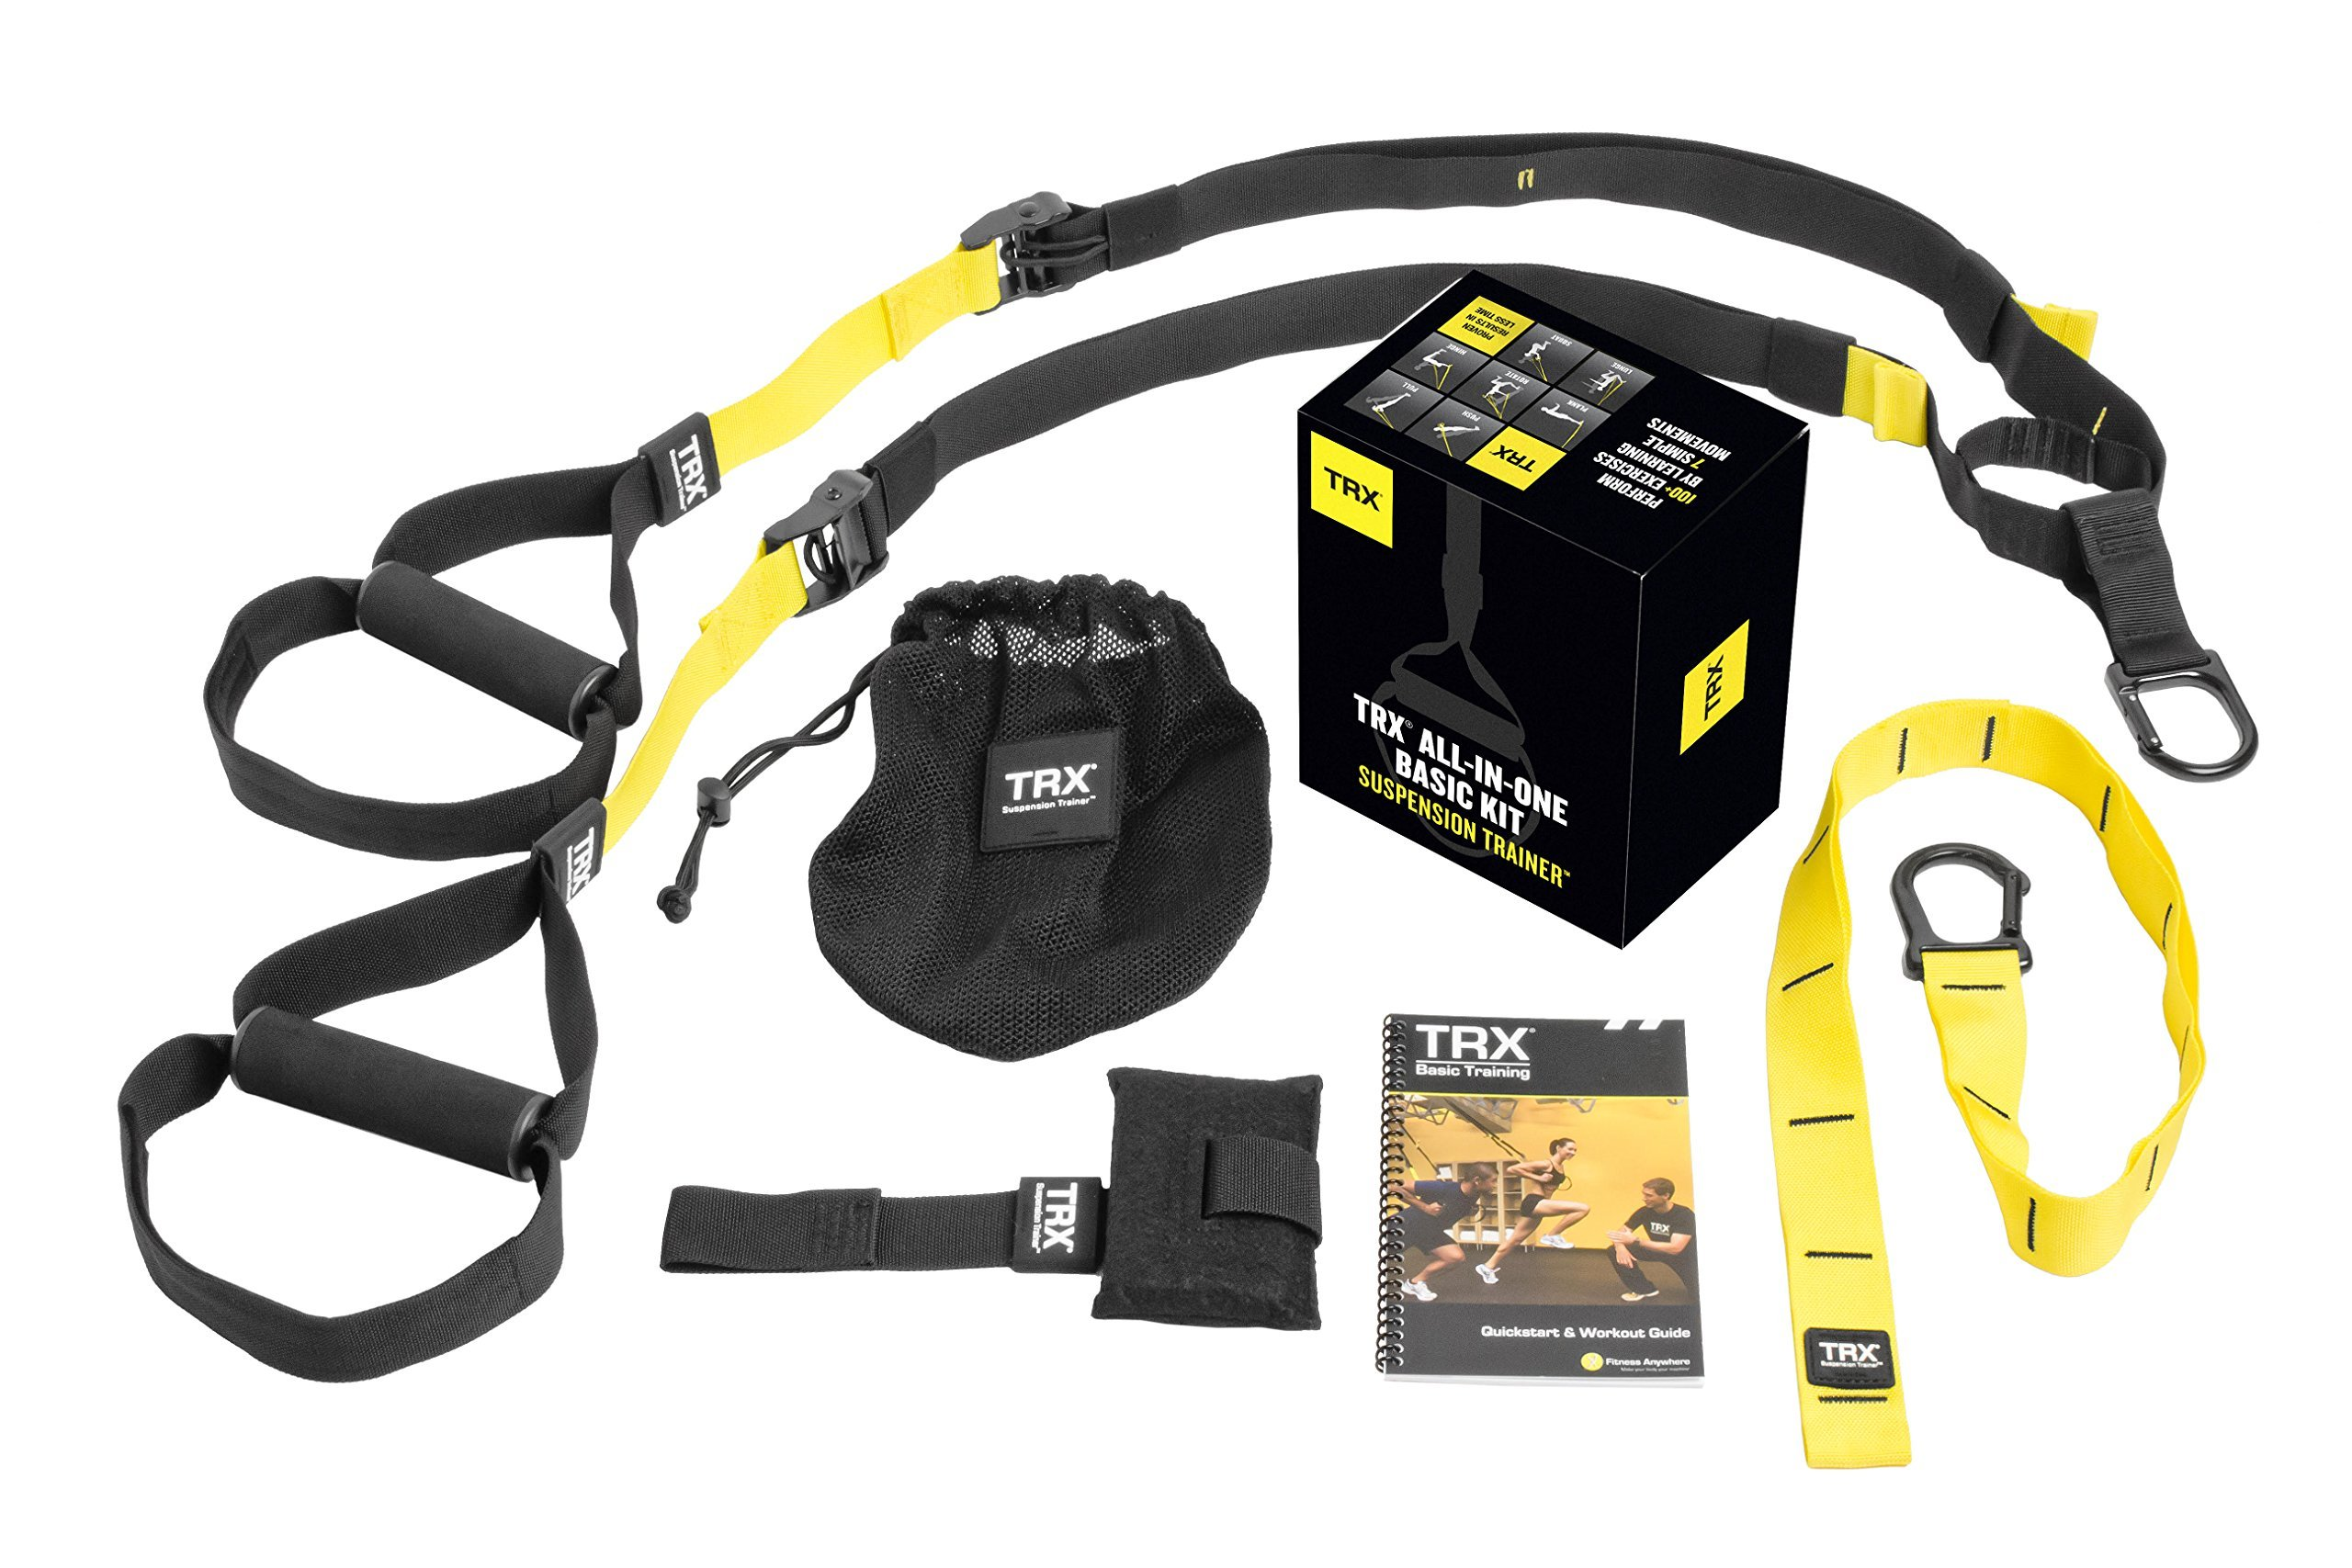 TRX Training – Suspension Trainer Basic Kit + Door Anchor, Complete Full Body Workouts Kit for Home and on the Road by TRX